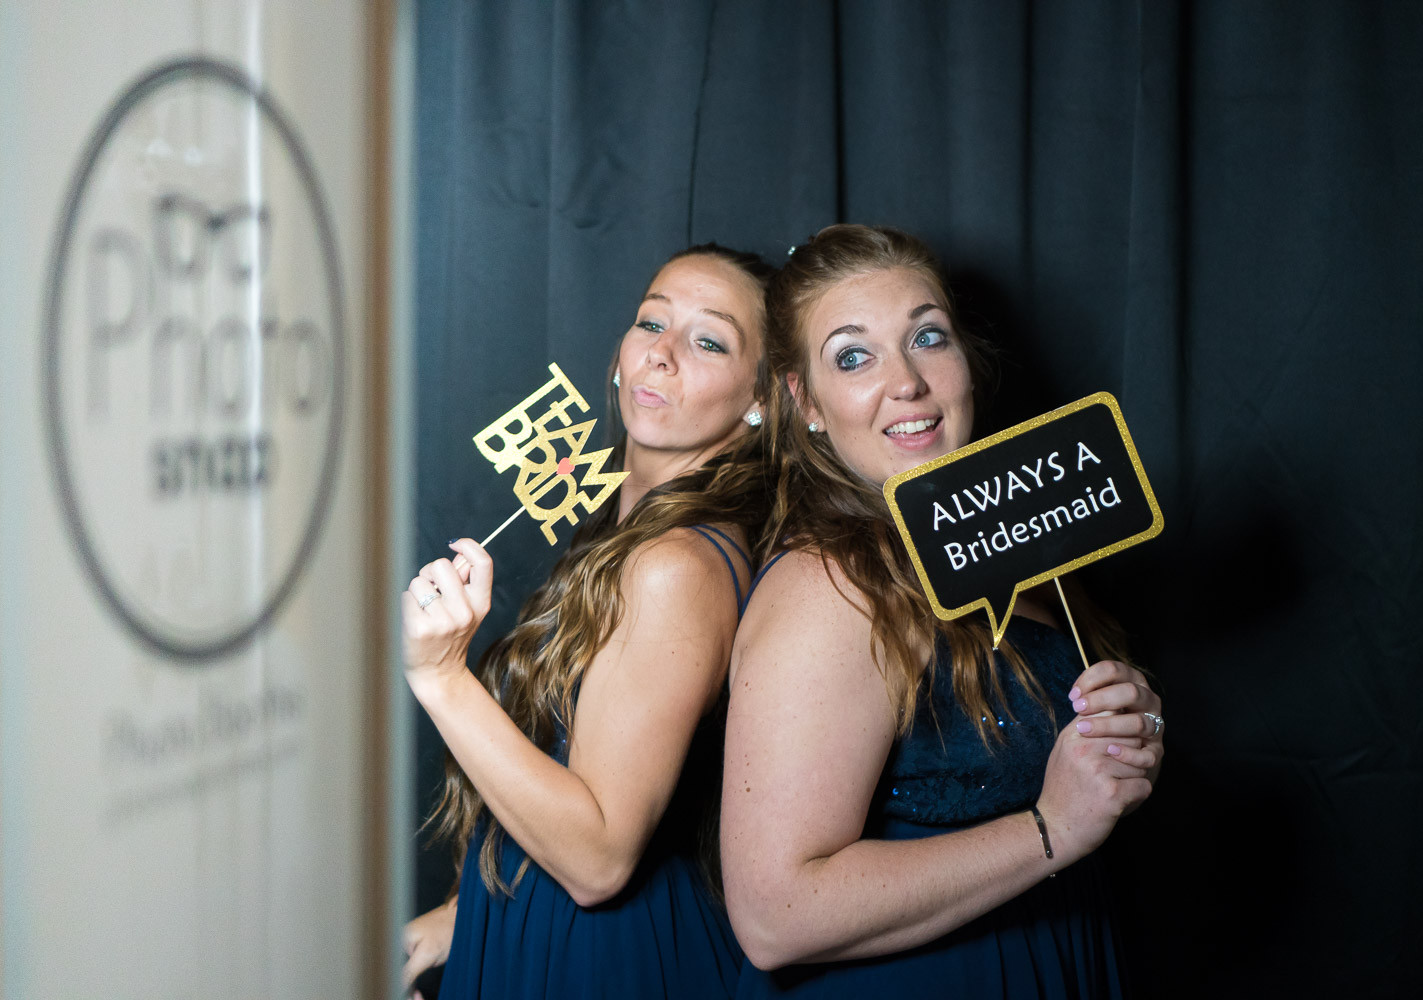 Bridesmaids in PhotoSnap Photo Booth